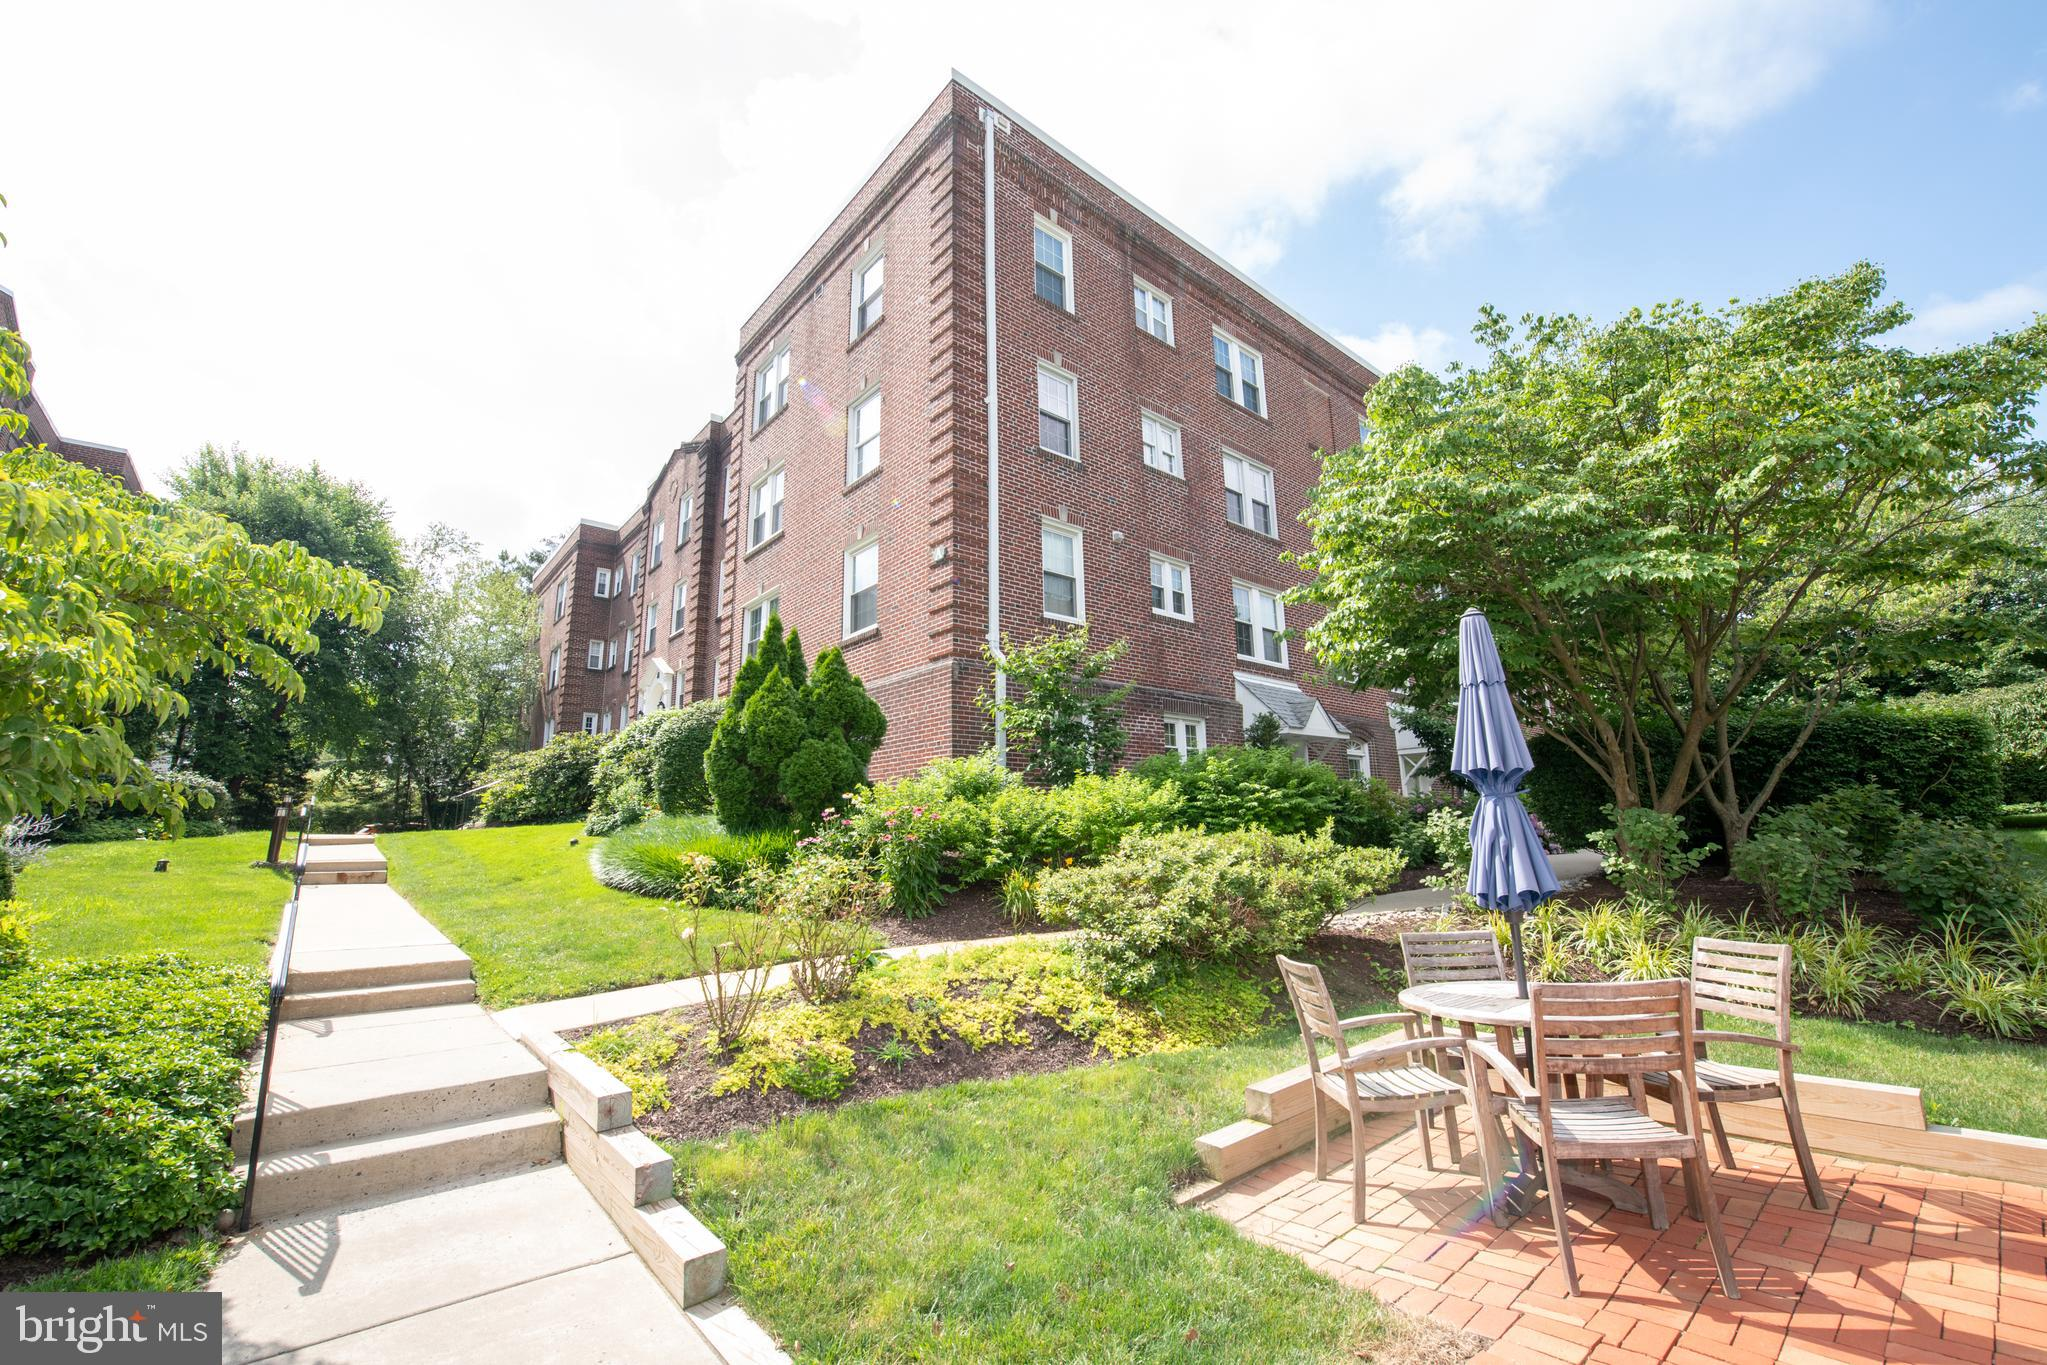 Welcome home to the Hampshire at Havertown!  This highly sought after 2 bedroom, 2 bath condo in Bldg A is located in the heart of the main line.  Lower Merion School District. This development has so much to offer !  Enjoy taking a stroll around to enjoy the well manicured grounds.  Summertime enjoyment includes the use of the pool, patio and grilling areas.  As you enter Building A 's elegant vestibule you will immediately feel at home!  You can take the elevator or steps to your fabulous condo.   On the way down the hall you will notice a lovely common deck area.   This condo offers low maintenance living at it's finest!  Enjoy a cozy evening by the wood burning fireplace.  The living/dining room open concept is large enough to host holiday dinners.  Preparing meals will be a breeze in the step saver kitchen.  The primary bedroom has incredible closet space and an  en-suite bathroom.  There's also a second bedroom that the current owner uses as a home office (built-in's are included with your purchase).  Large utility closet with stackable washer/dryer, Heater was replaced 2020, A/C replaced 2019.  Windows replaced with double hung, high efficiency vinyl windows approximately 5 years ago.      Pets are permitted with restrictions.  The location is amazing! A few minutes away from Suburban Square with great shops, restaurants, fitness center, micro brewery, Ardmore Farmer's Market and Trader Joes.  Public transportation, buses, Ardmore train station, Route 476 and so much more!